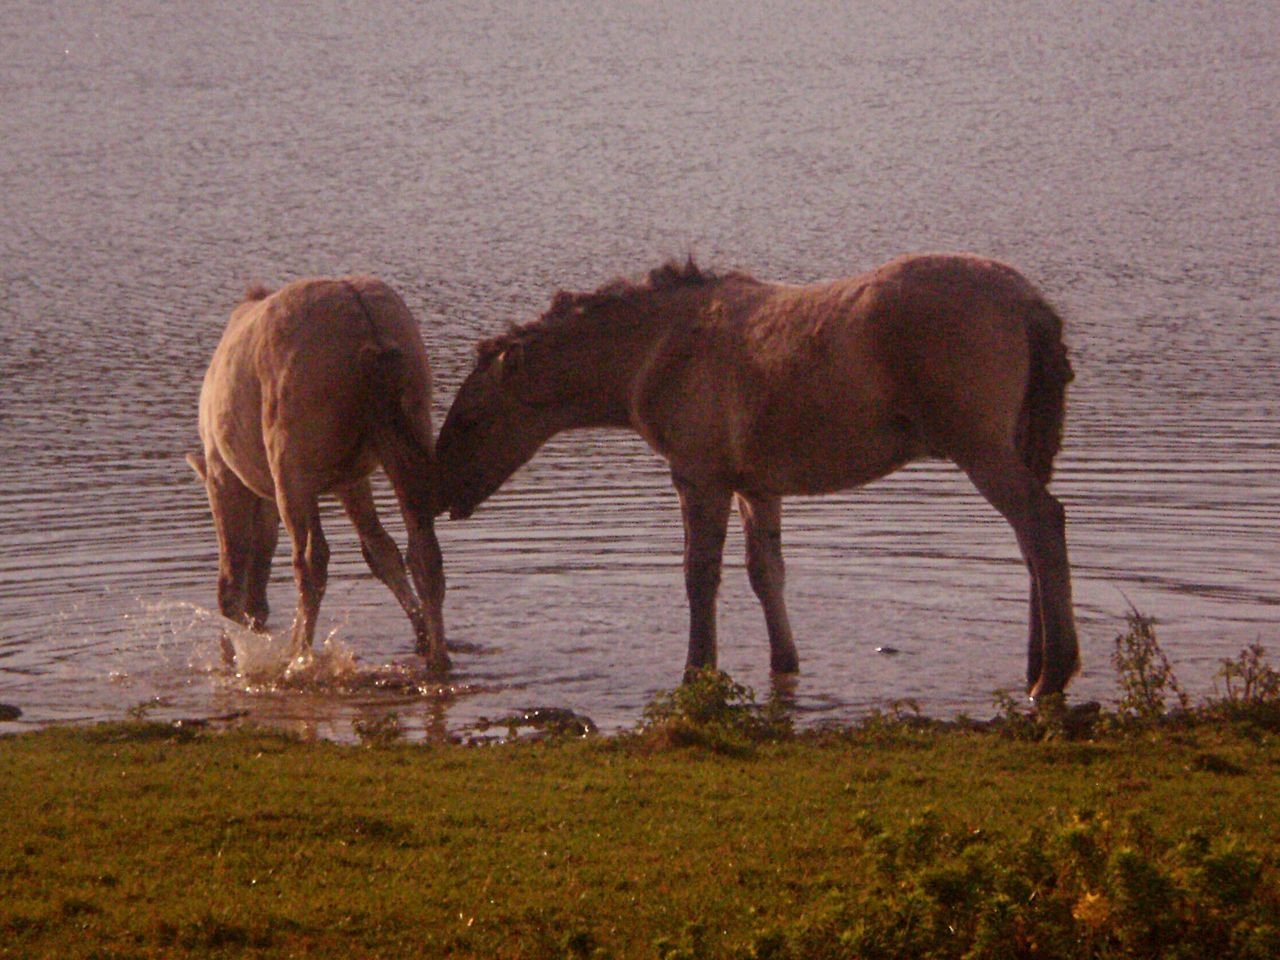 horse, two animals, animal themes, mammal, domestic animals, togetherness, nature, outdoors, livestock, no people, day, standing